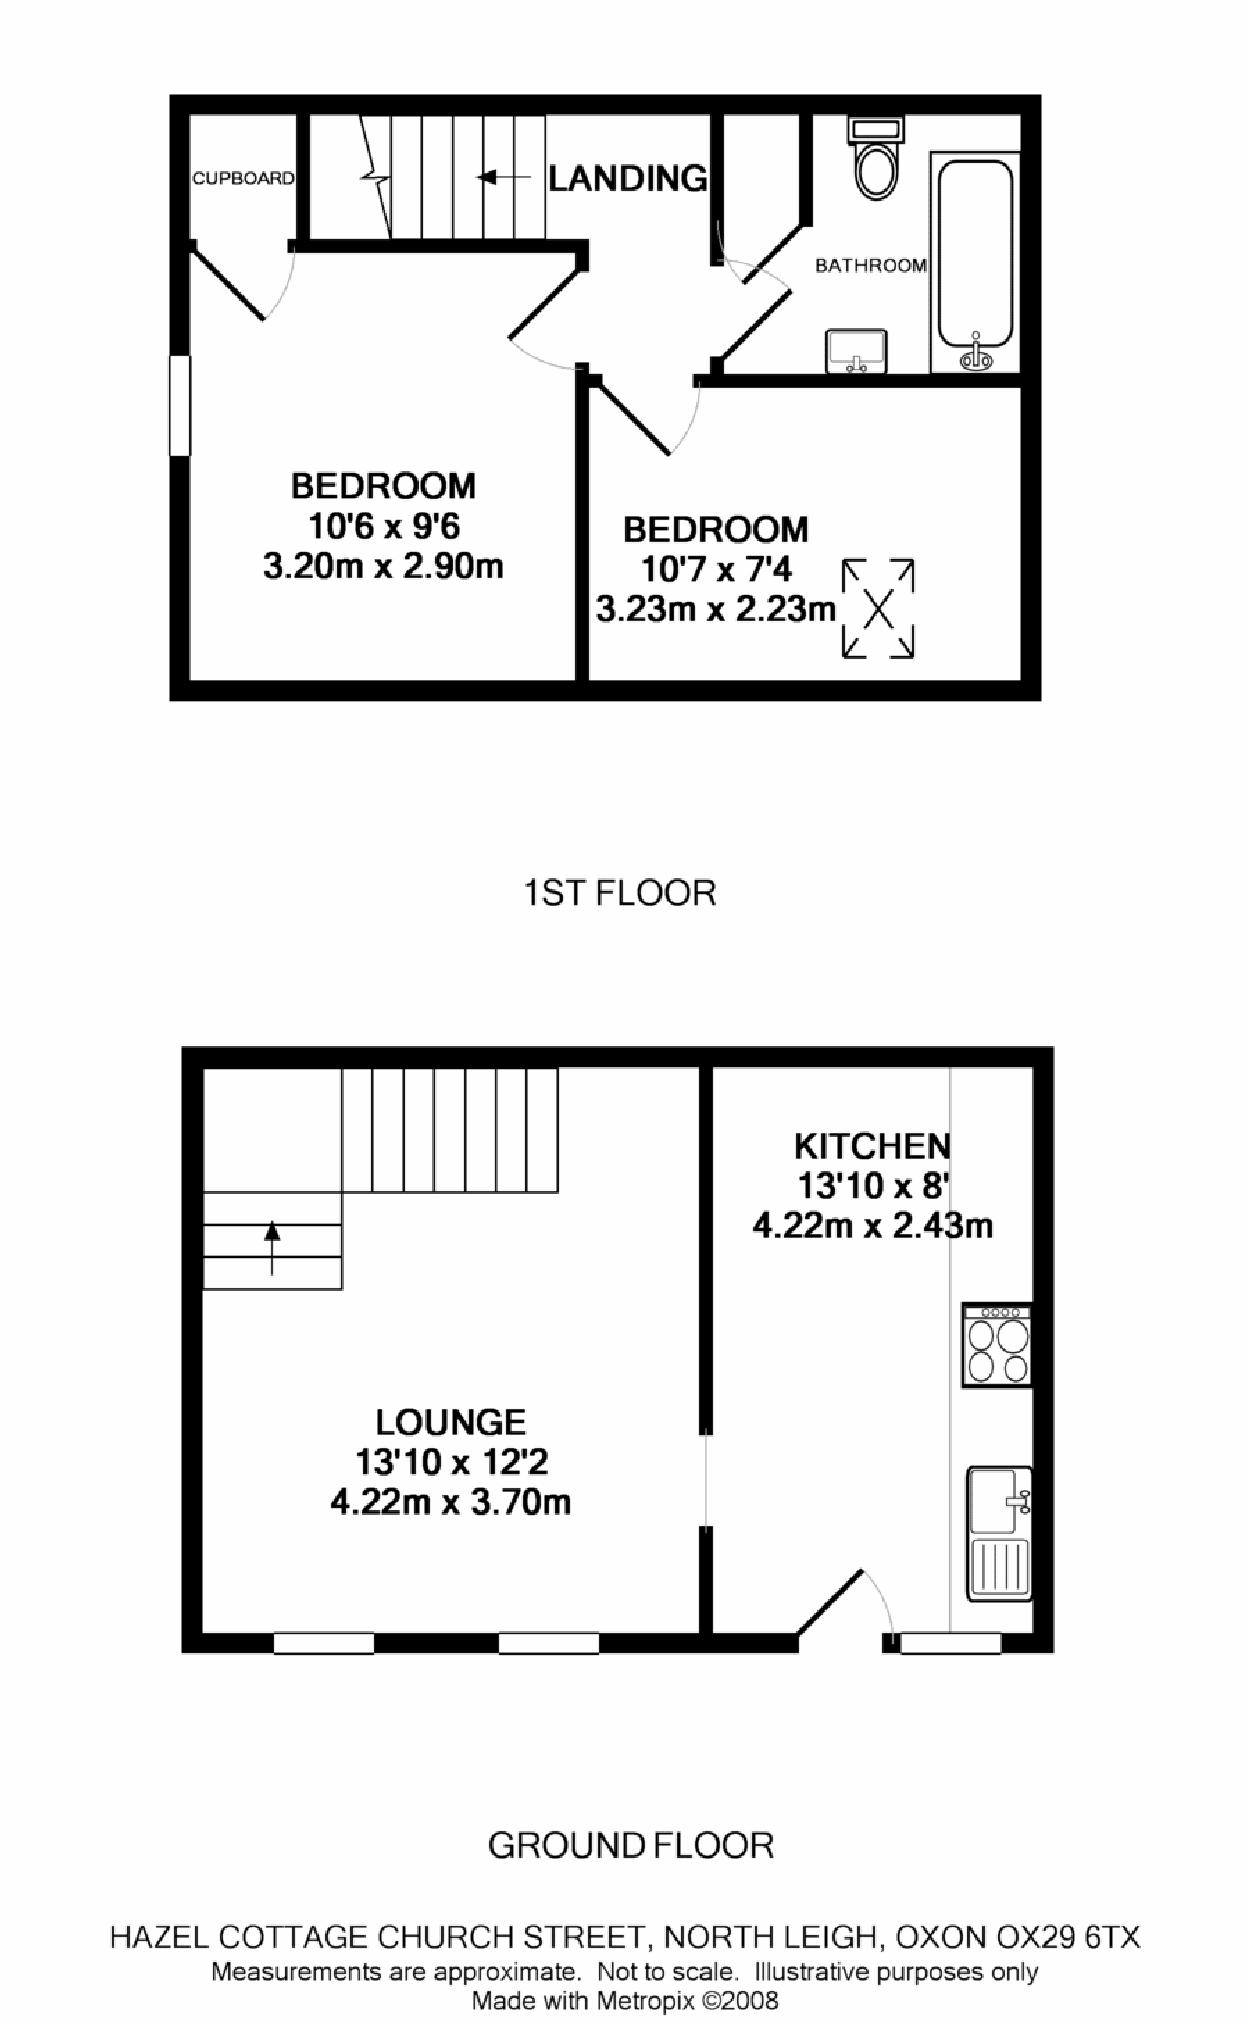 Church road north leigh ox29 ref 15572 witney for 2 bed house floor plans uk